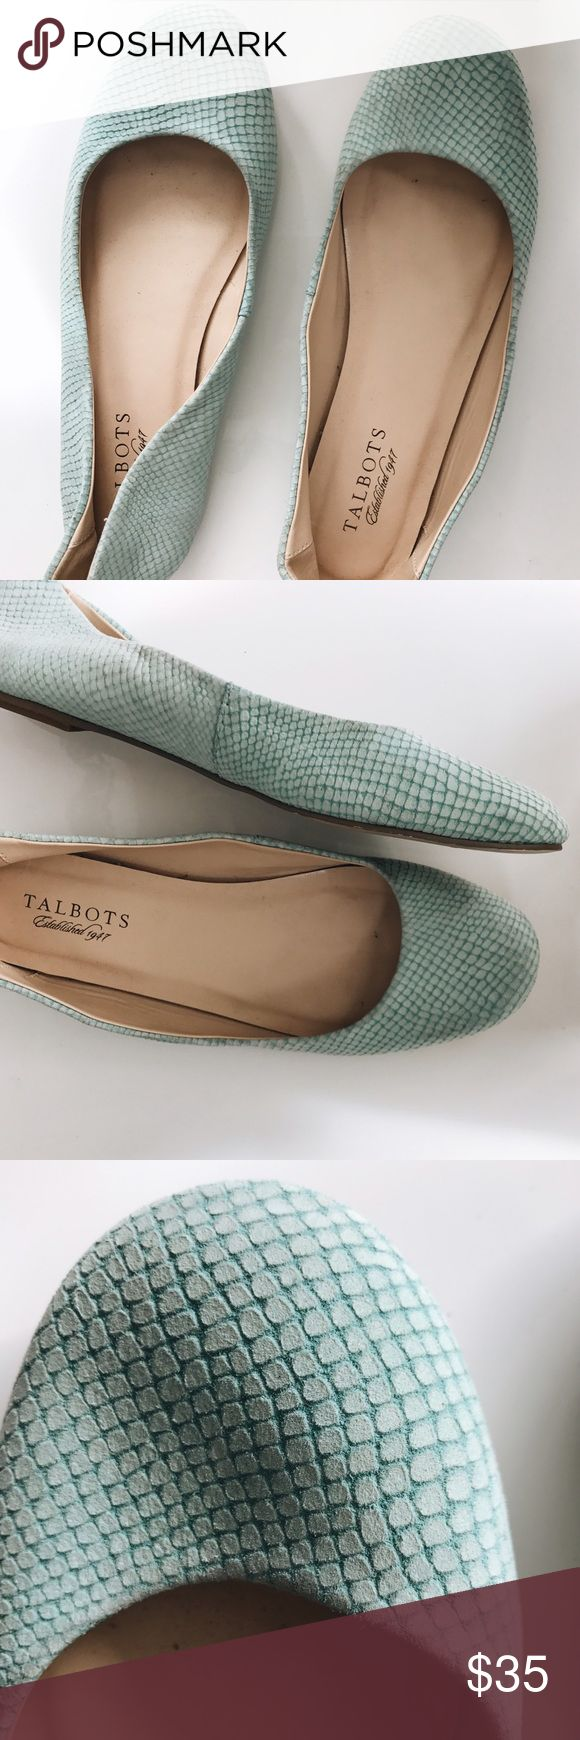 Talbots Teal Flat Sweet Talbots Teal flat. Perfect for teaching/any summer outfit! Good condition. Fits like size 8. Talbots Shoes Flats & Loafers